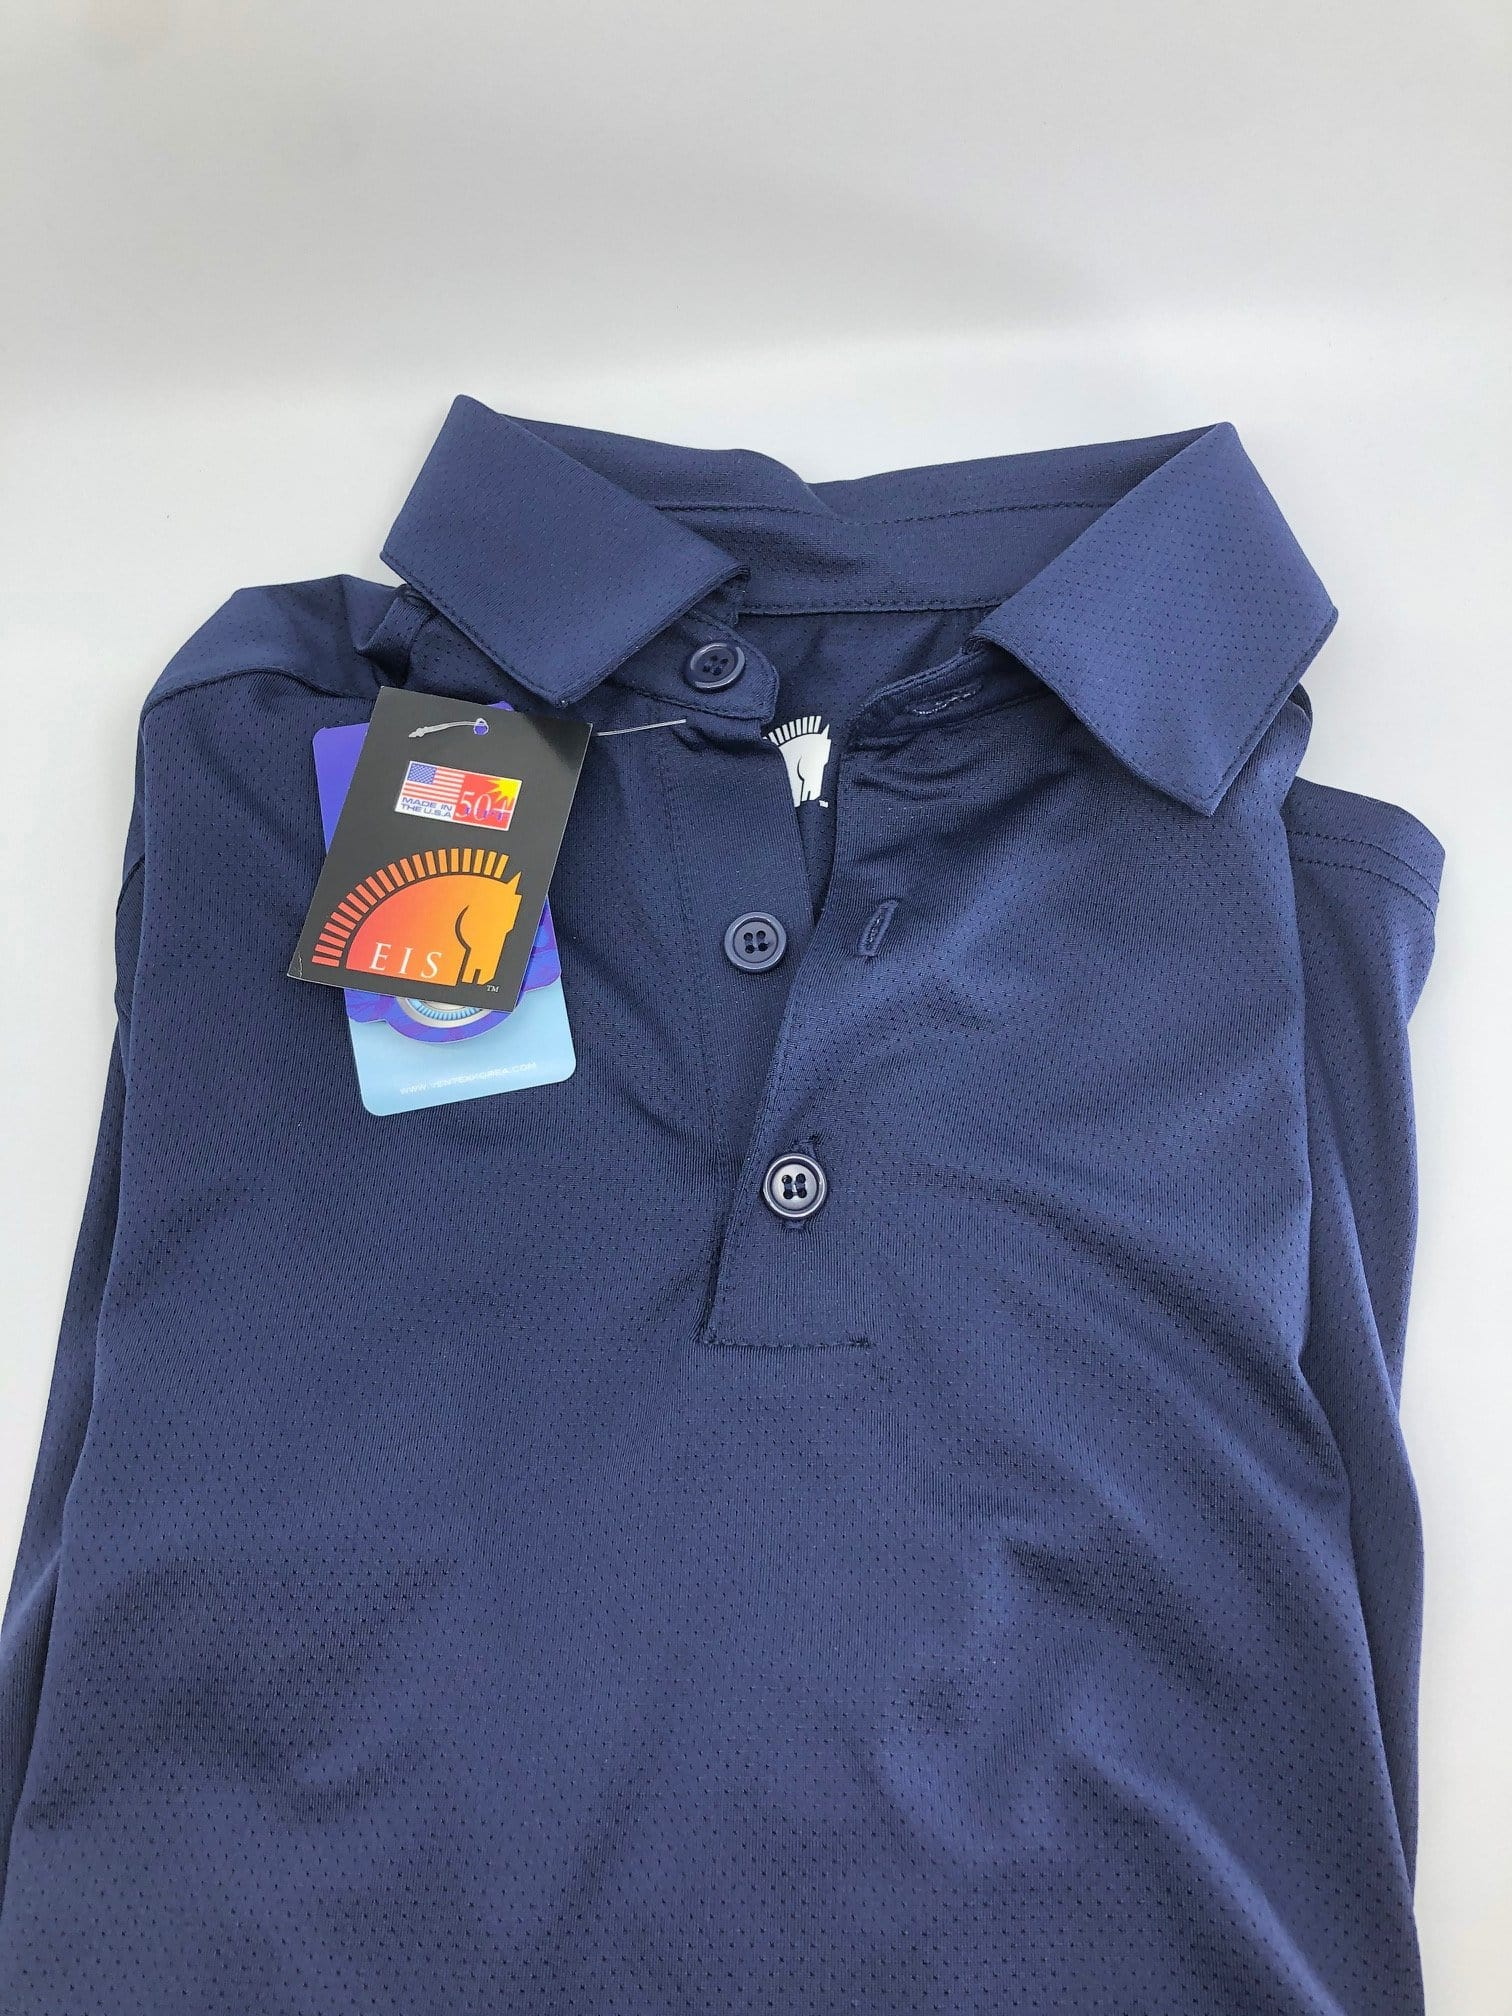 EIS Men's Shirts M/XS Men's Navy EIS Short Sleeve equestrian team apparel online tack store mobile tack store custom farm apparel custom show stable clothing equestrian lifestyle horse show clothing riding clothes horses equestrian tack store